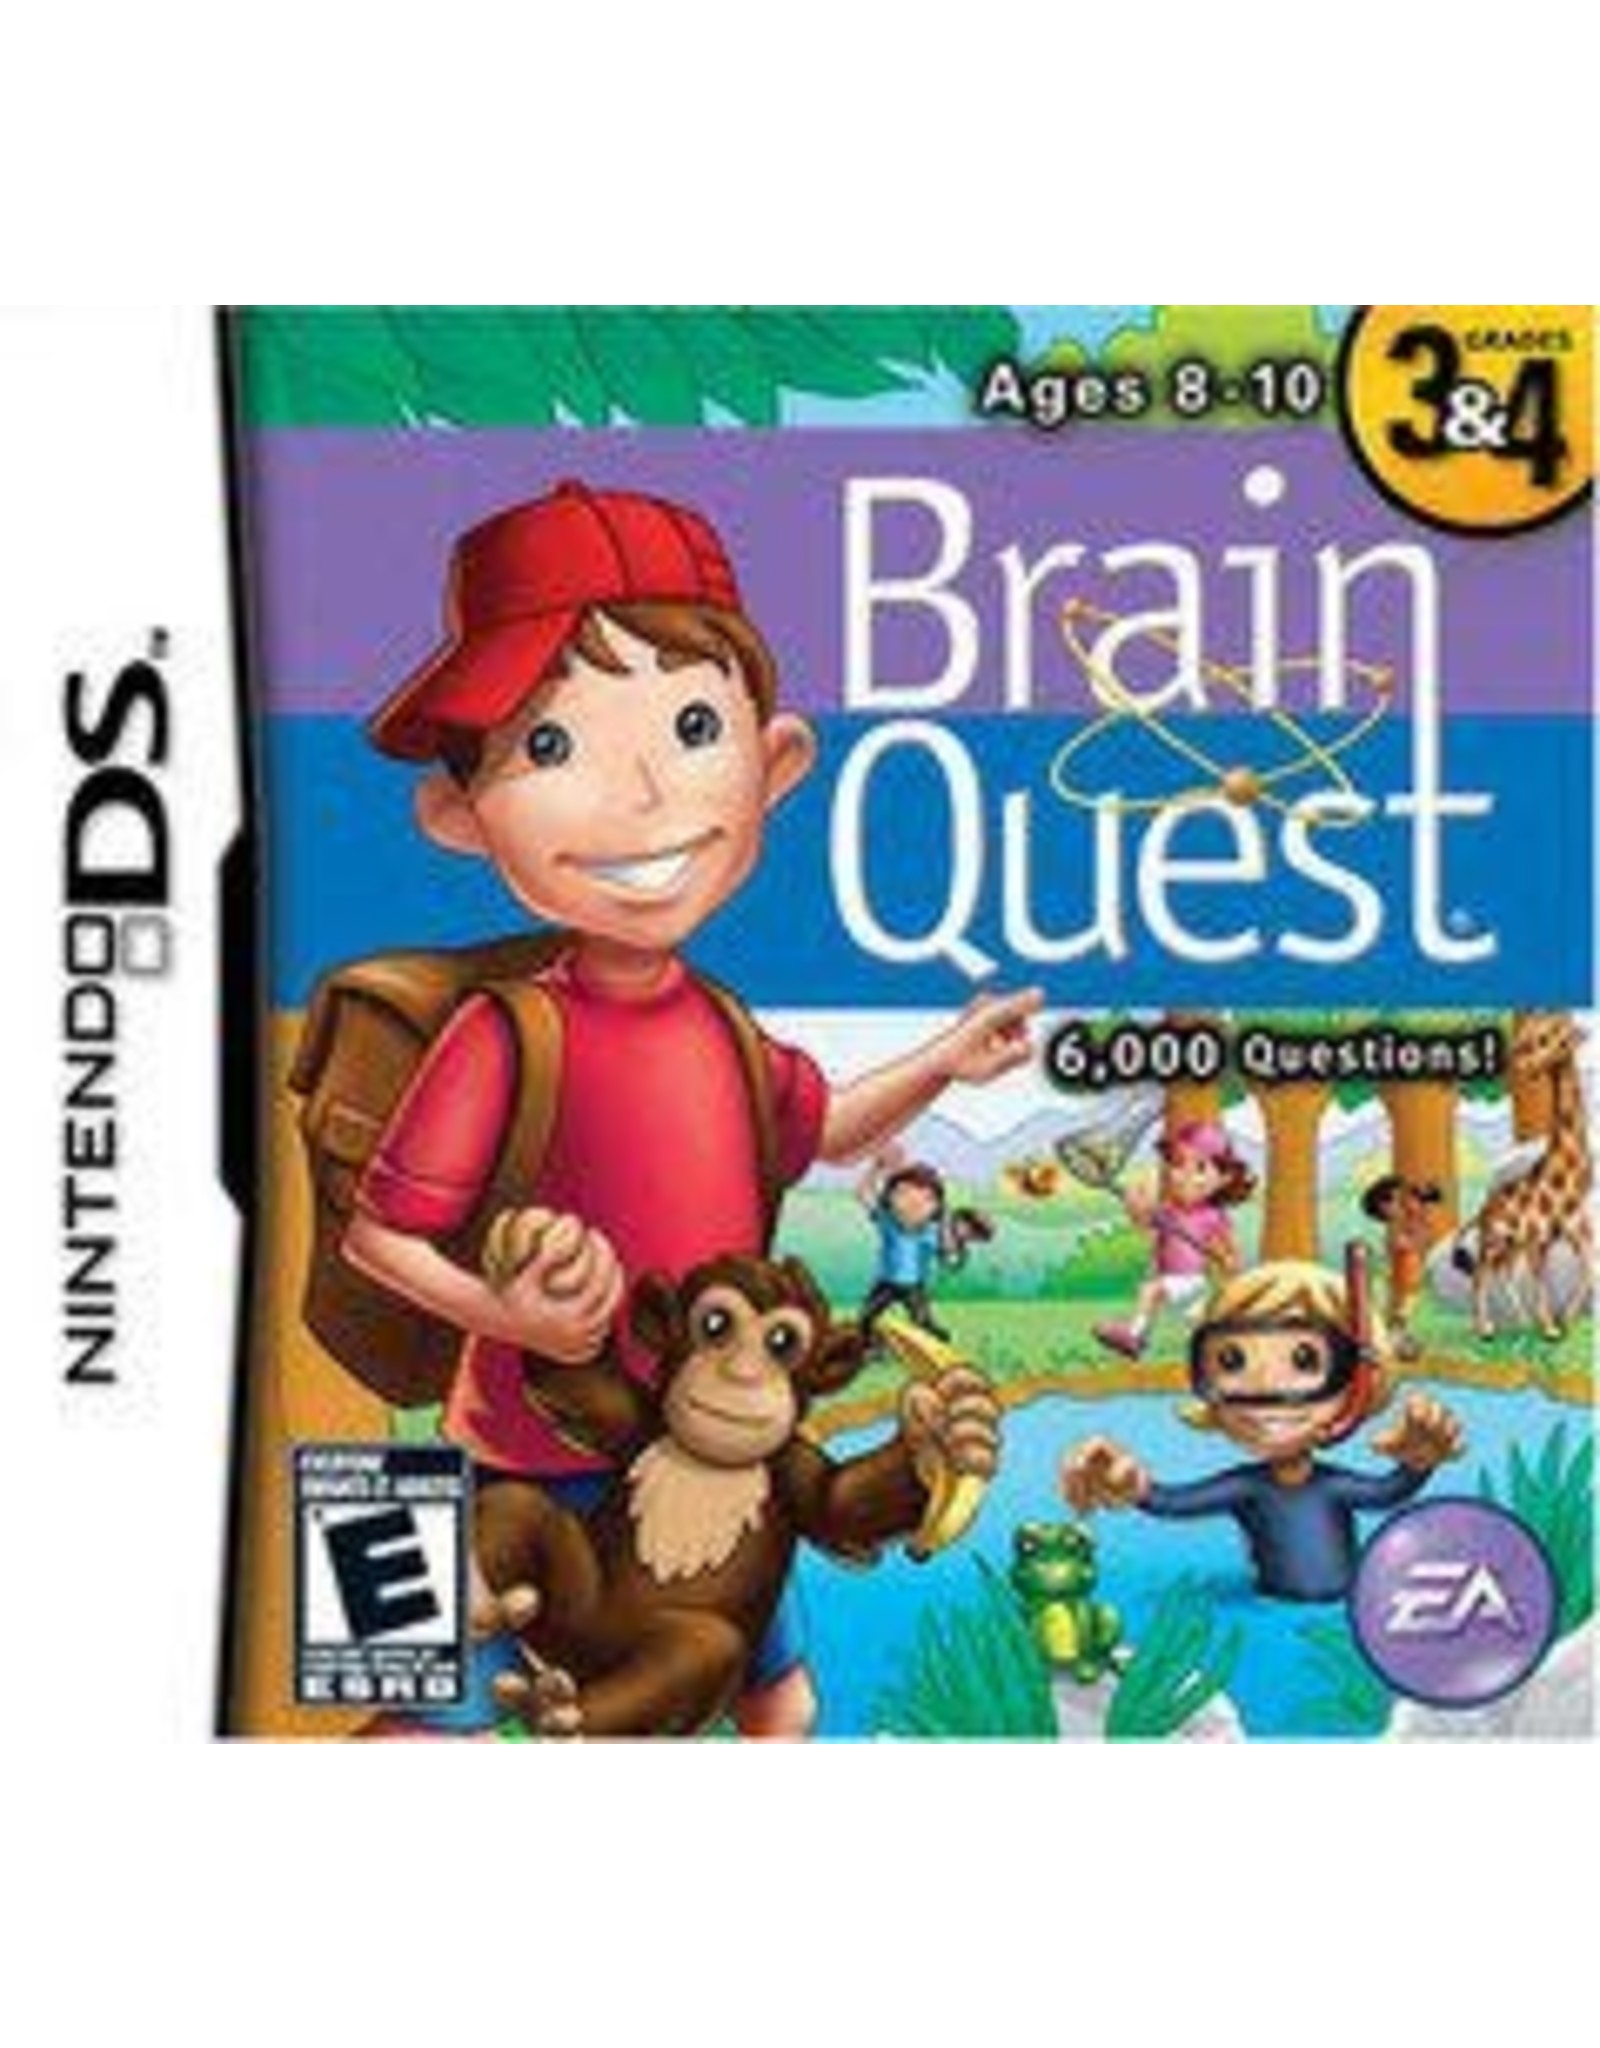 Nintendo DS Brain Quest Grades 3 & 4 (CiB)